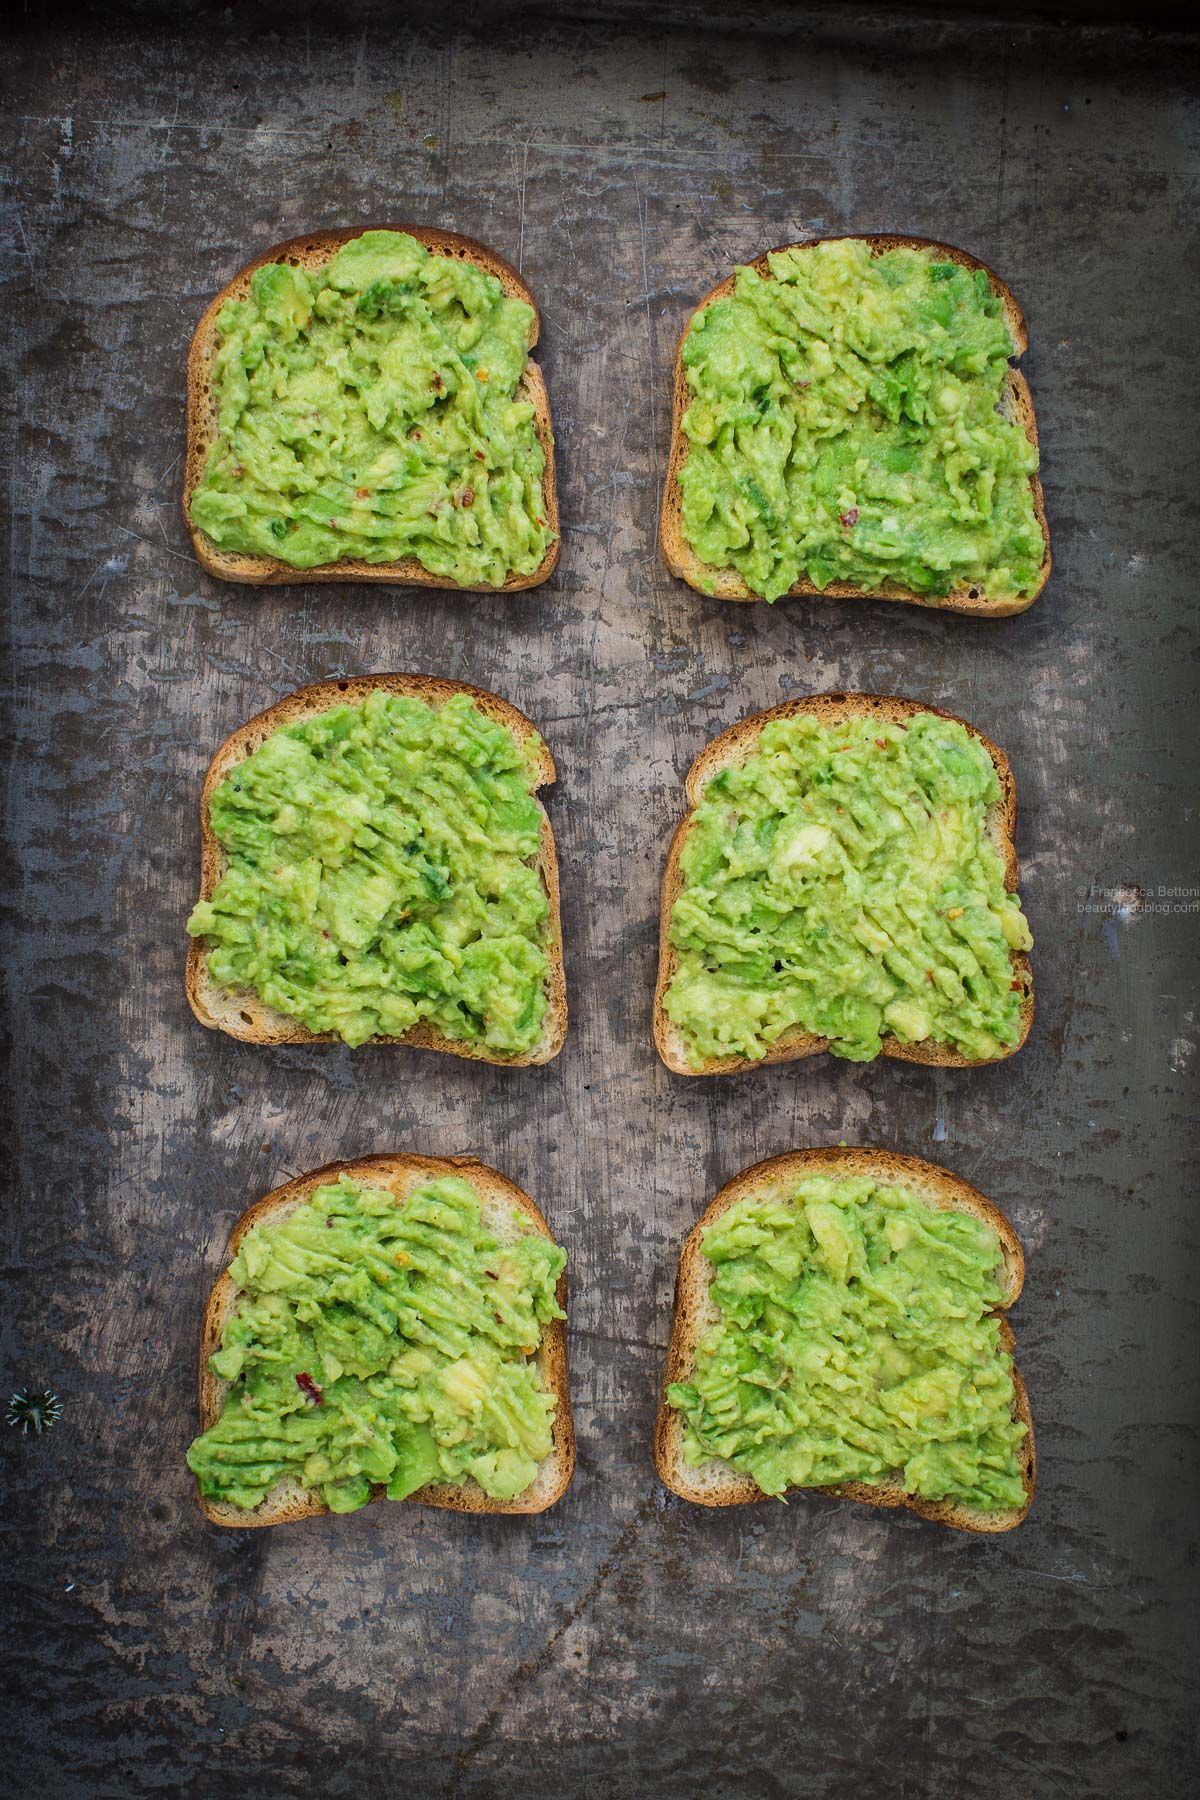 vegan avocado toast recipe - ricetta avocado toast vegan senza glutine